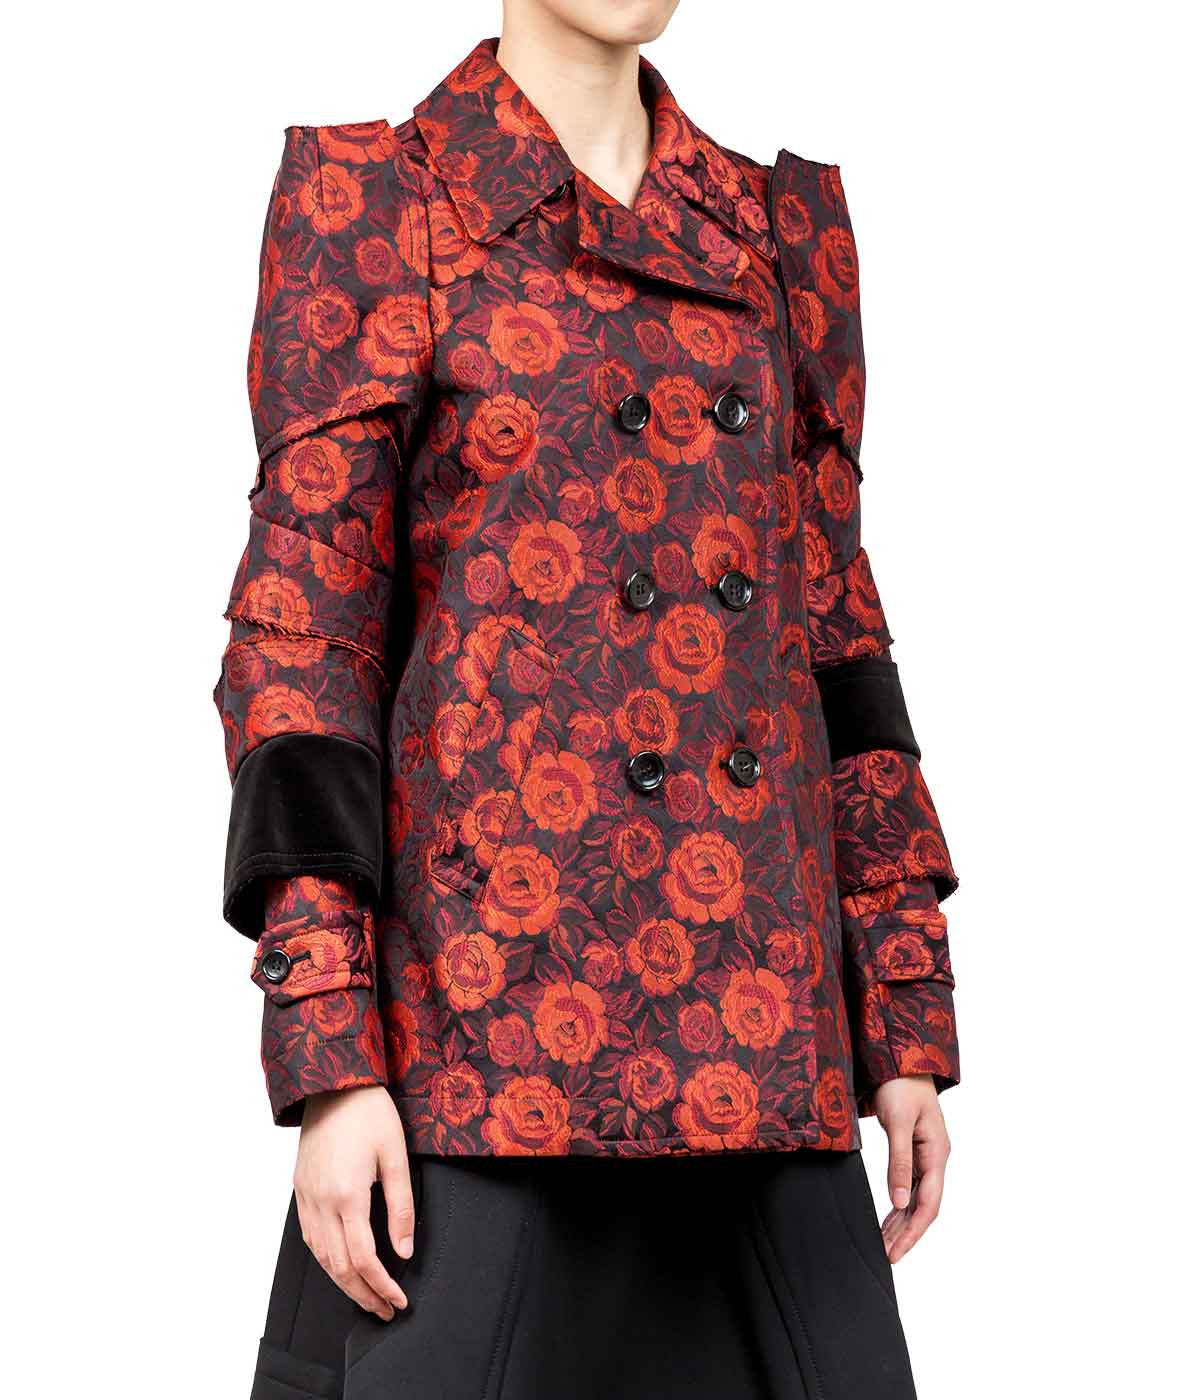 Black & Red Rose Jacquard Jacket